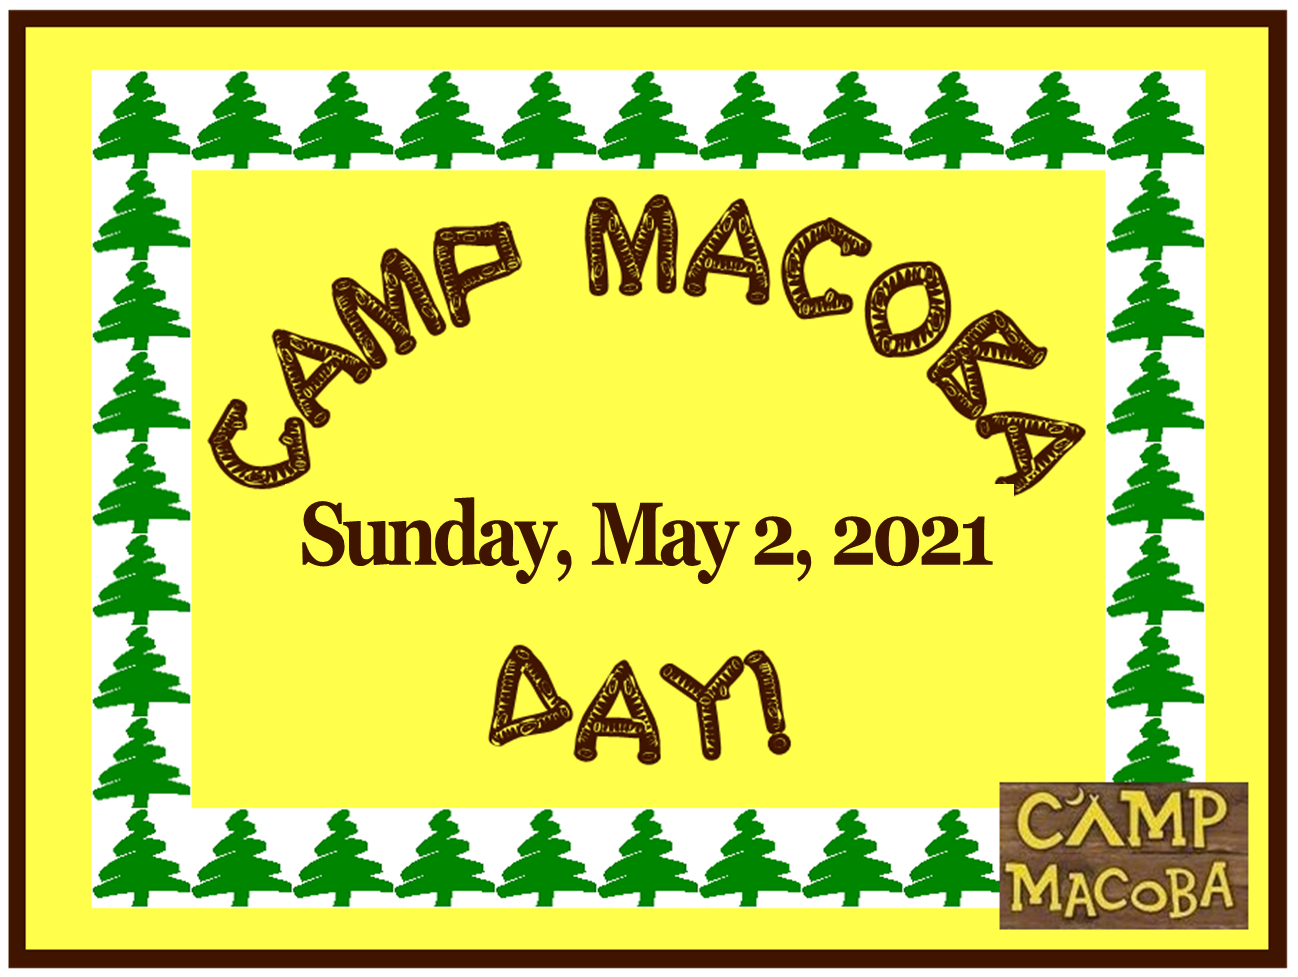 Camp MACOBA Sunday